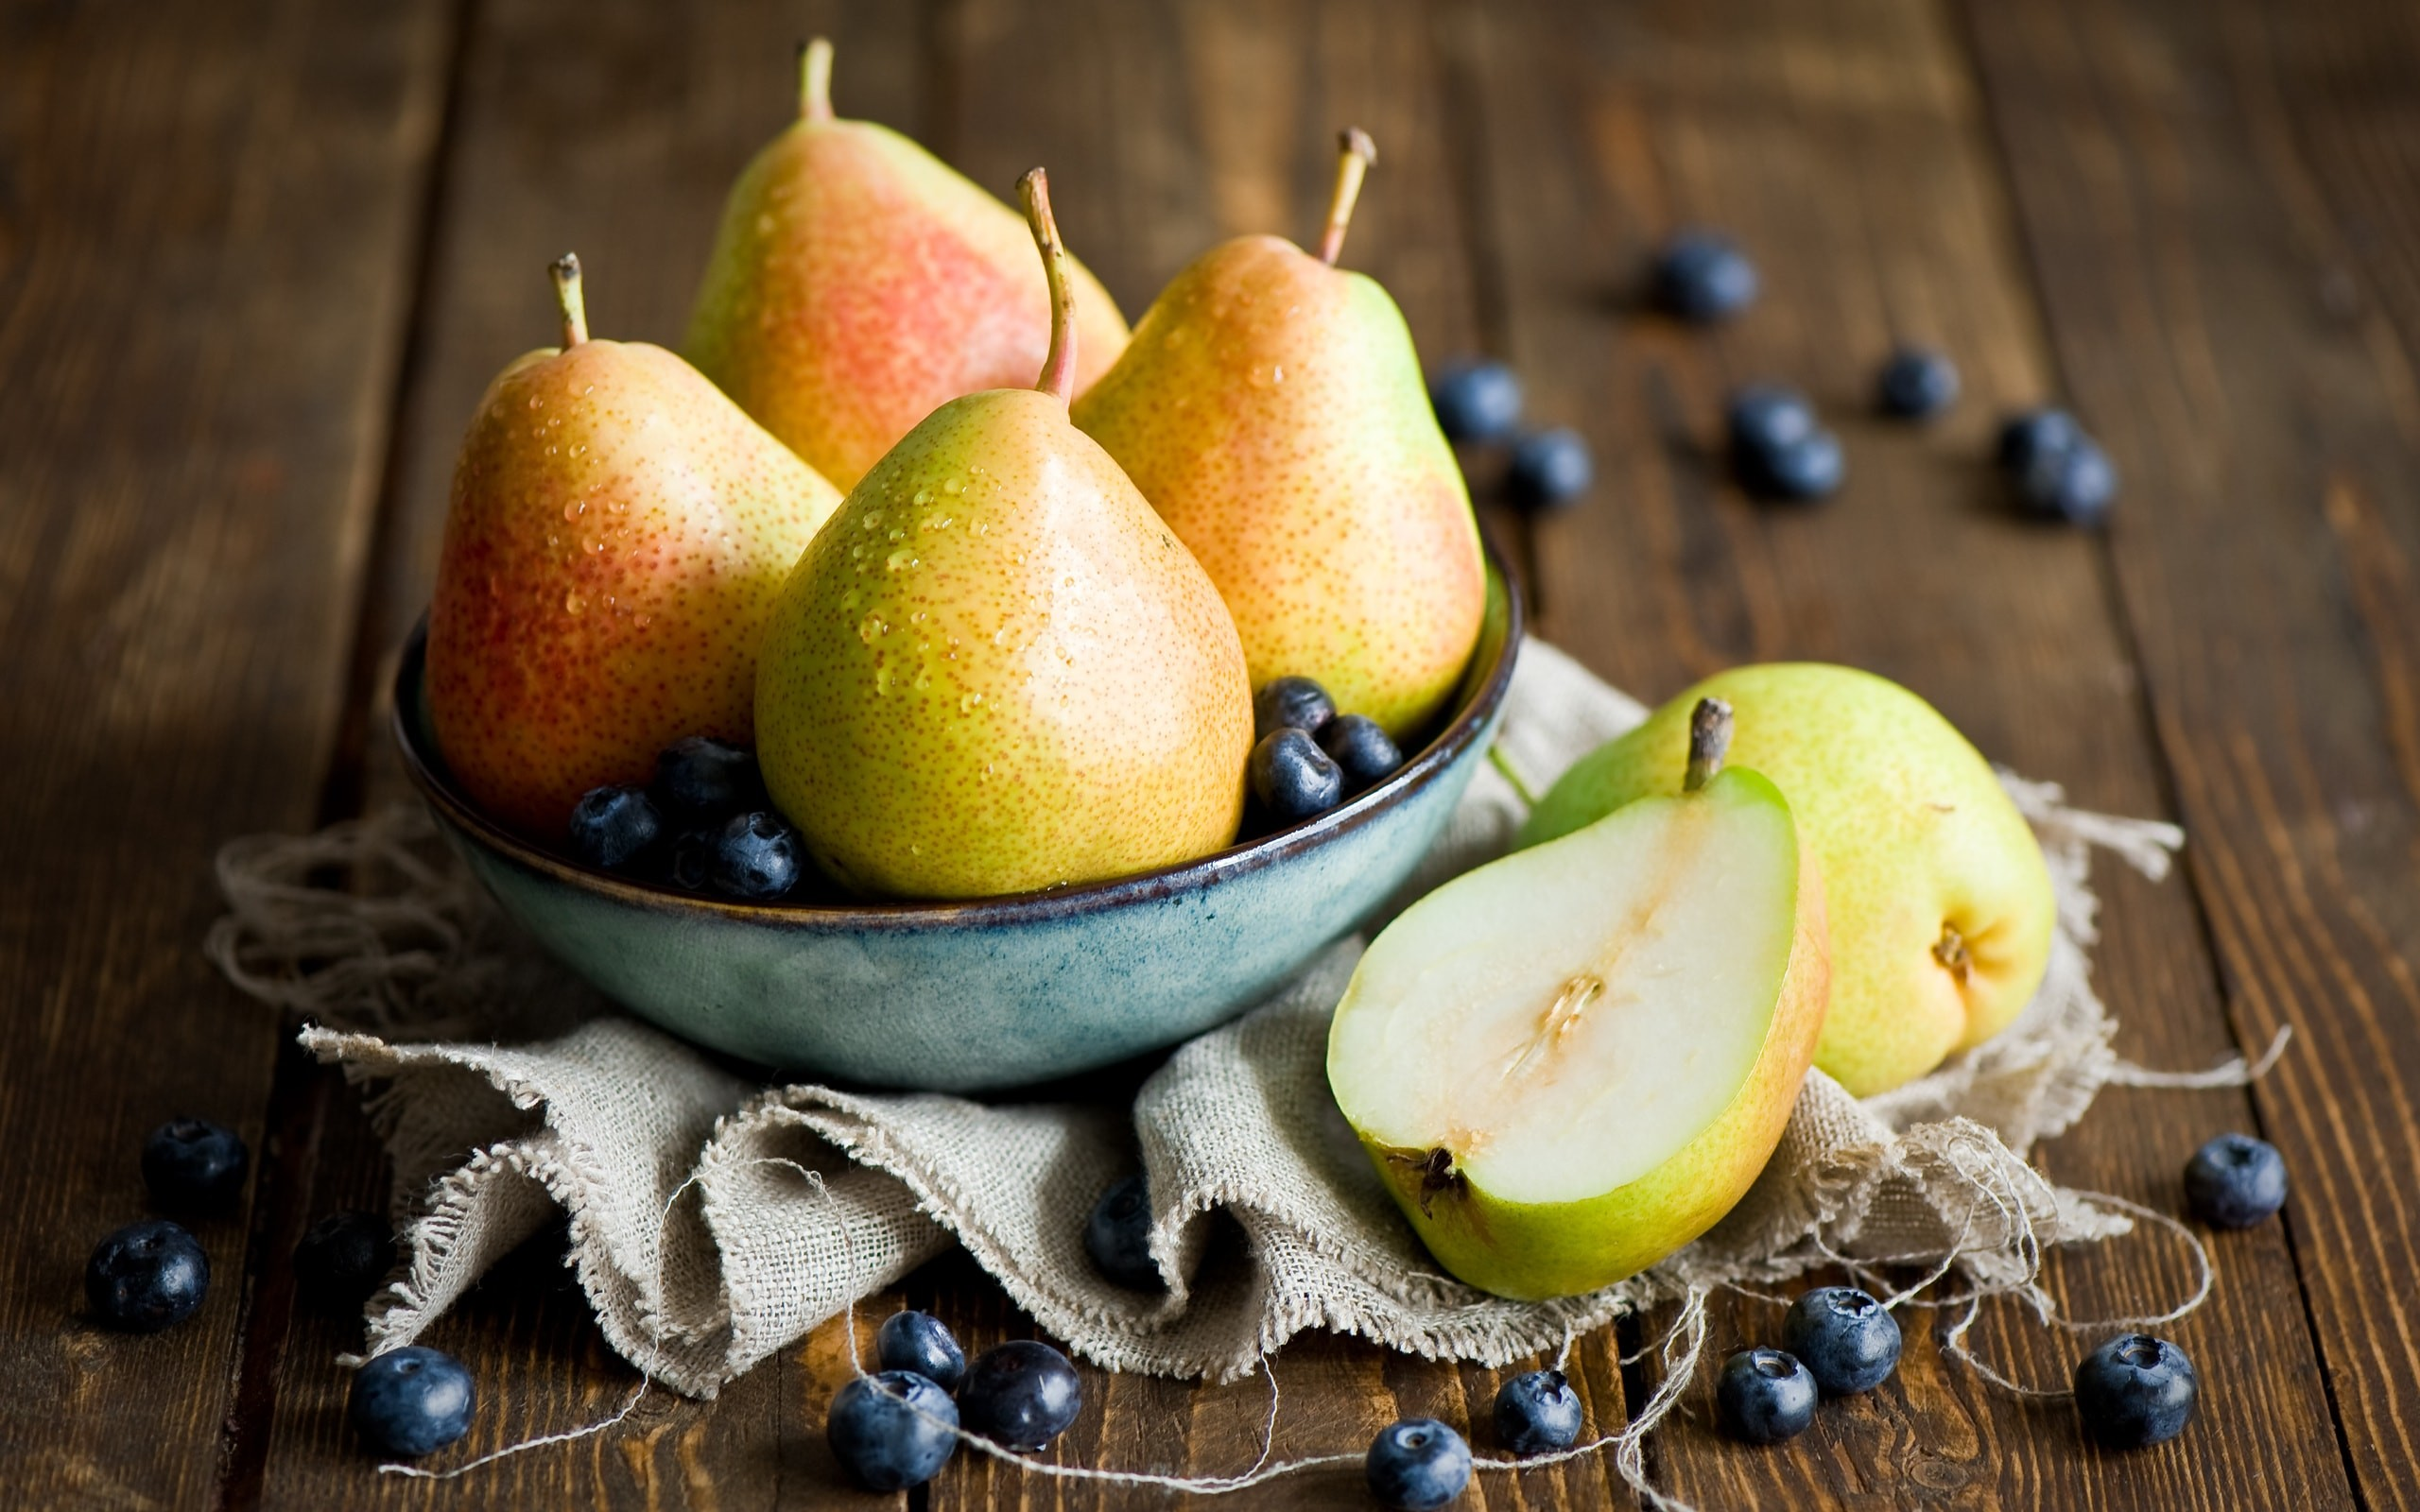 2560x1600 Pear widescreen wallpapers Pear Pictures